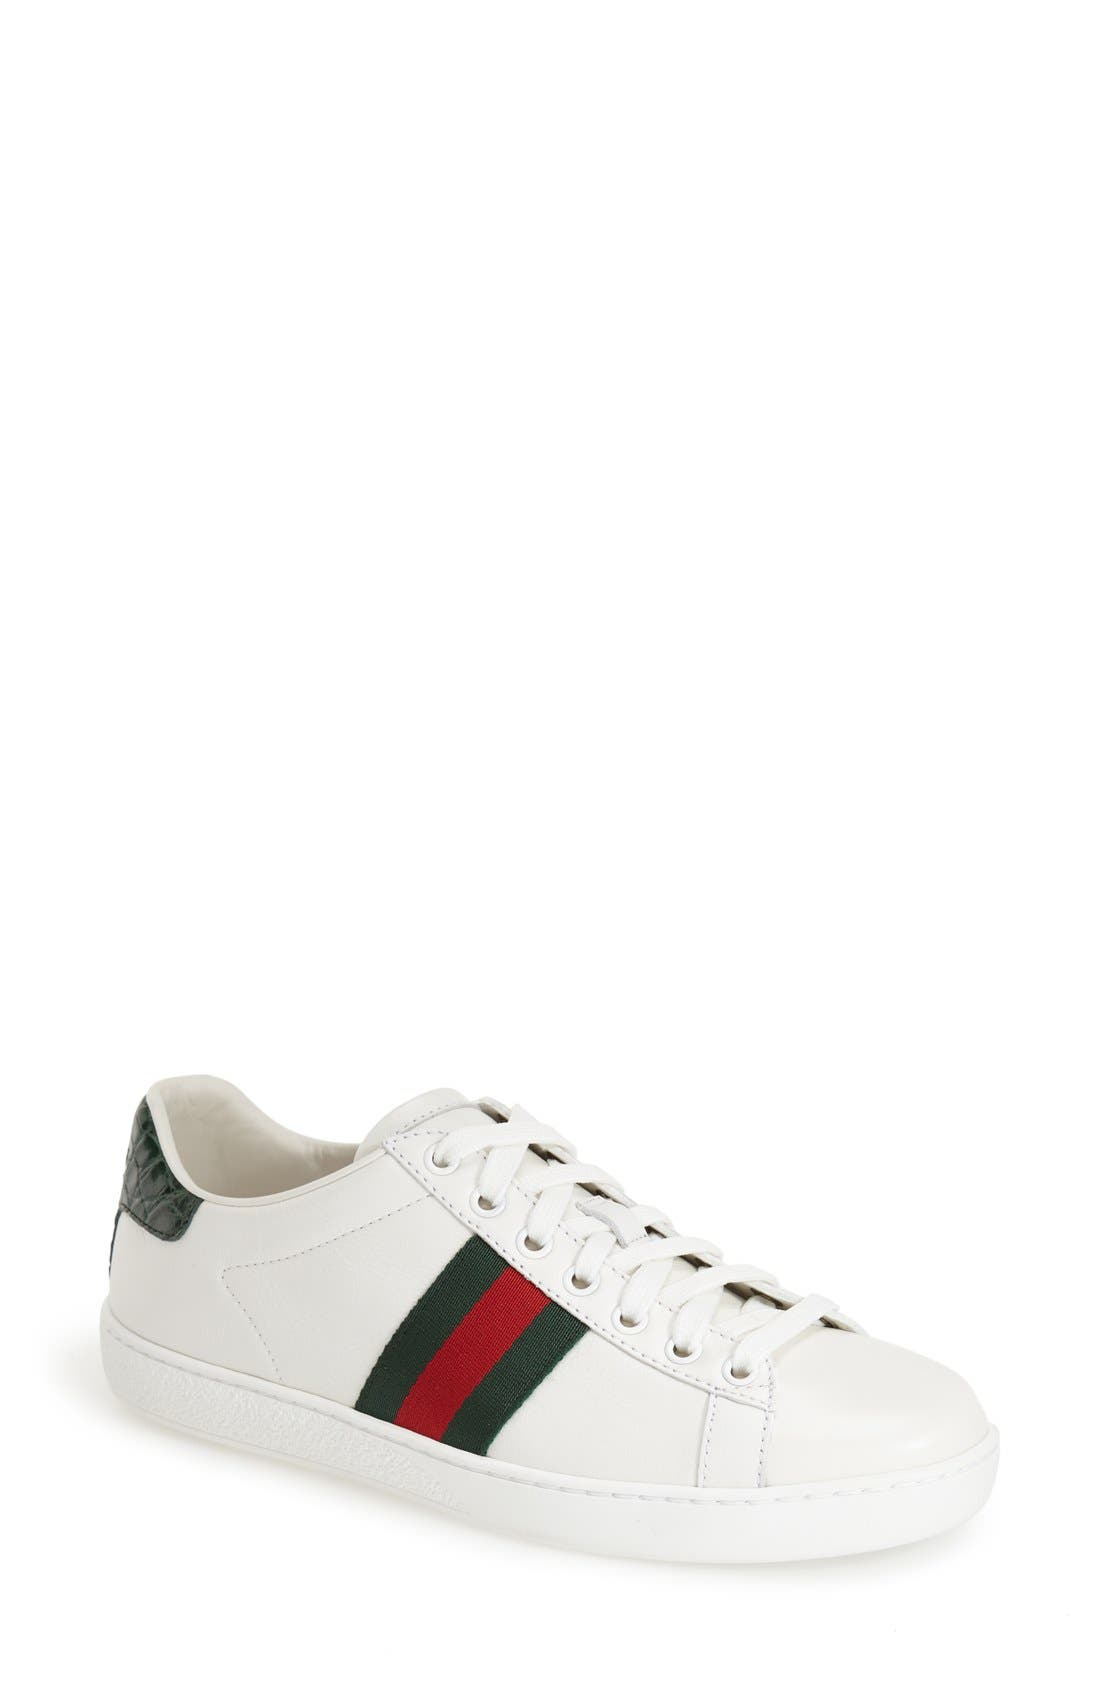 f6816b3cc Women's Gucci Shoes | Nordstrom